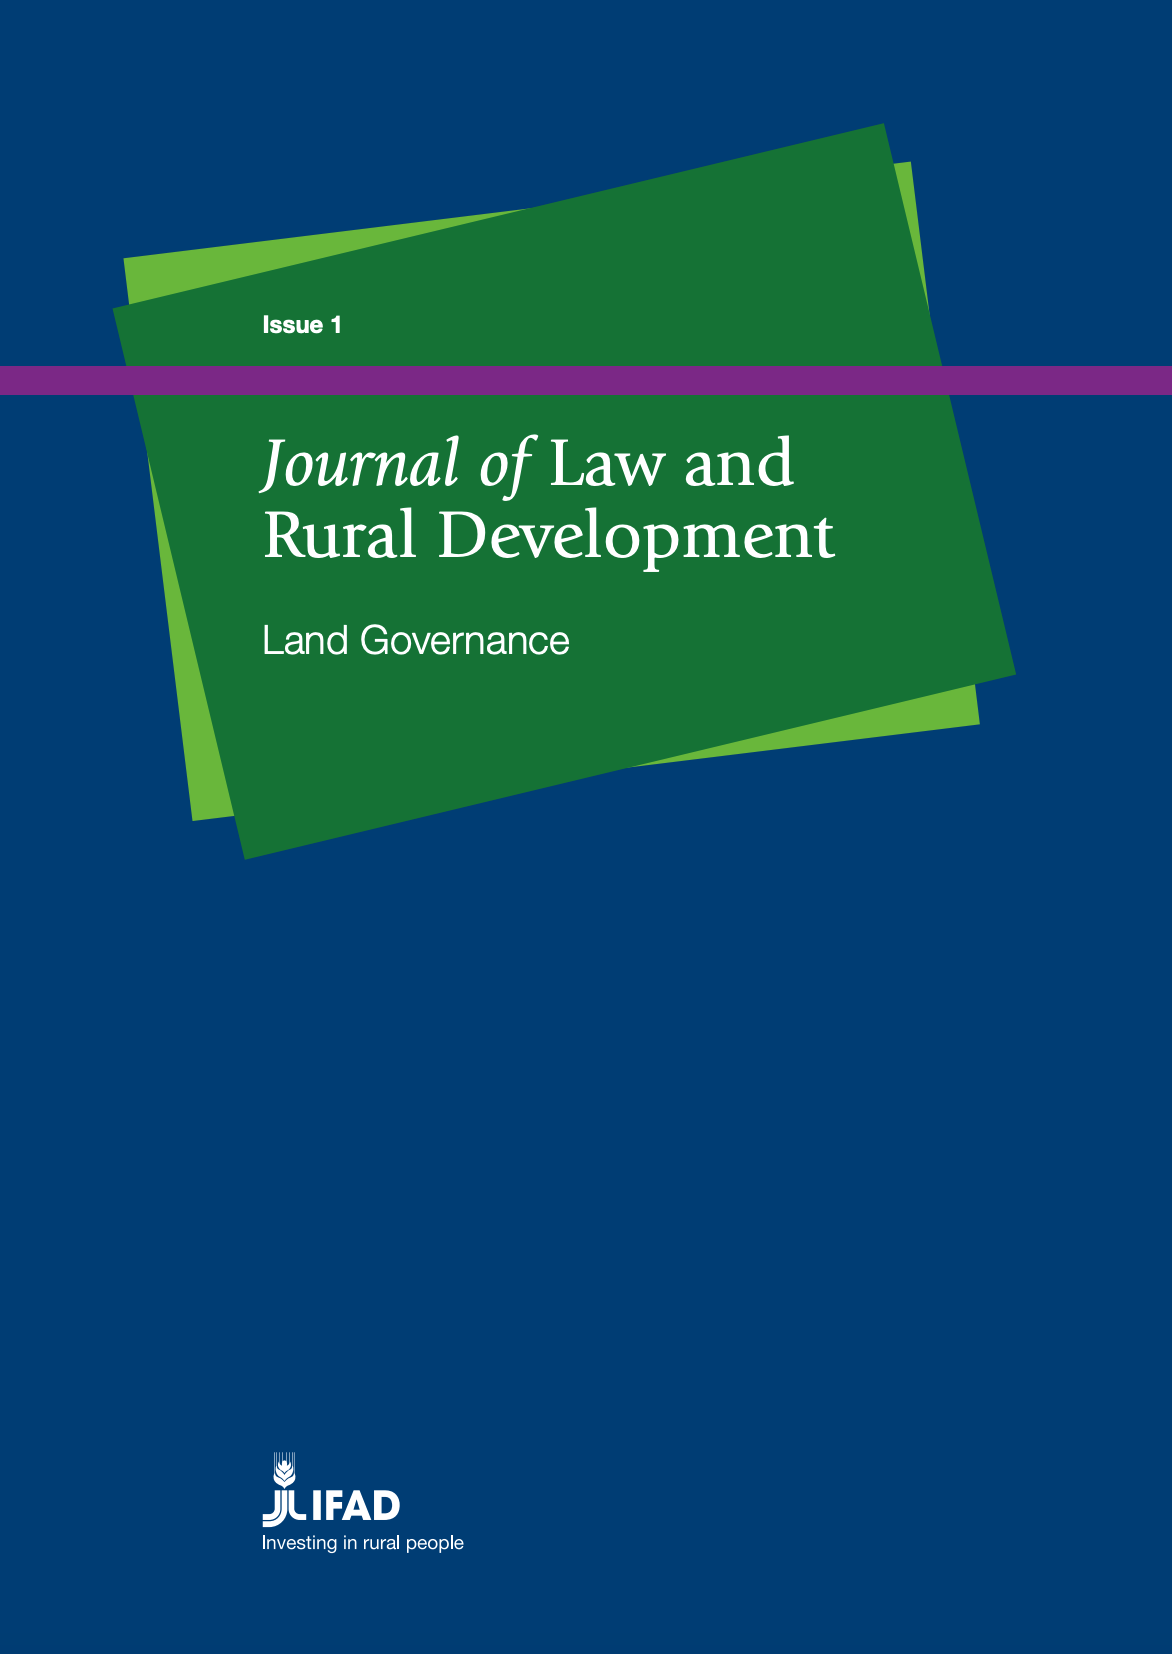 Journal of Law and Rural Development: Land Governance cover image